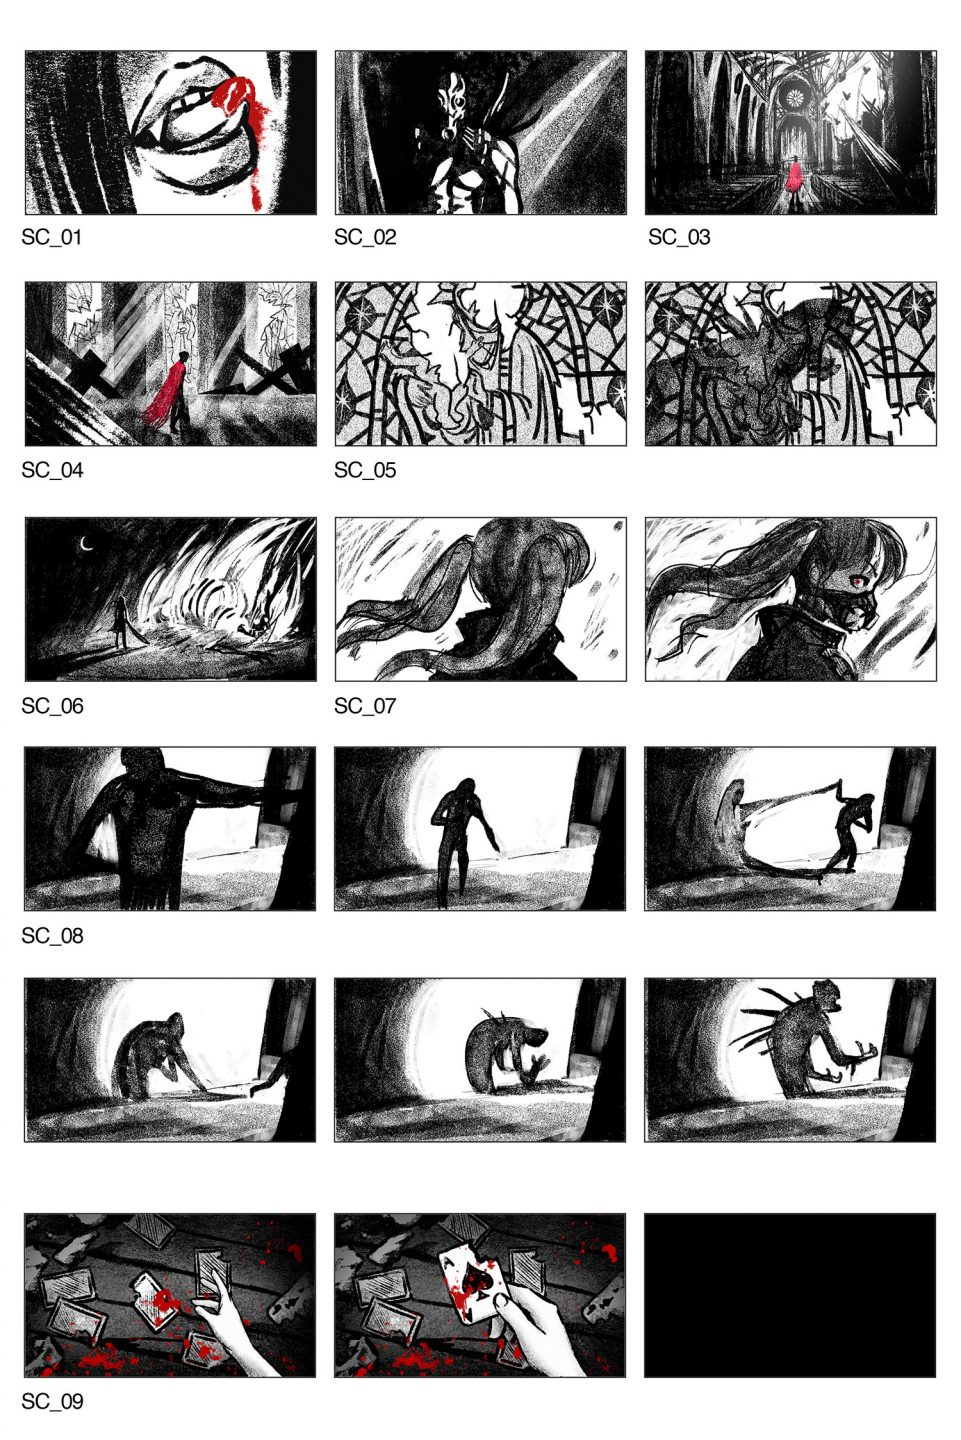 Storyboards by Marika Cowan.